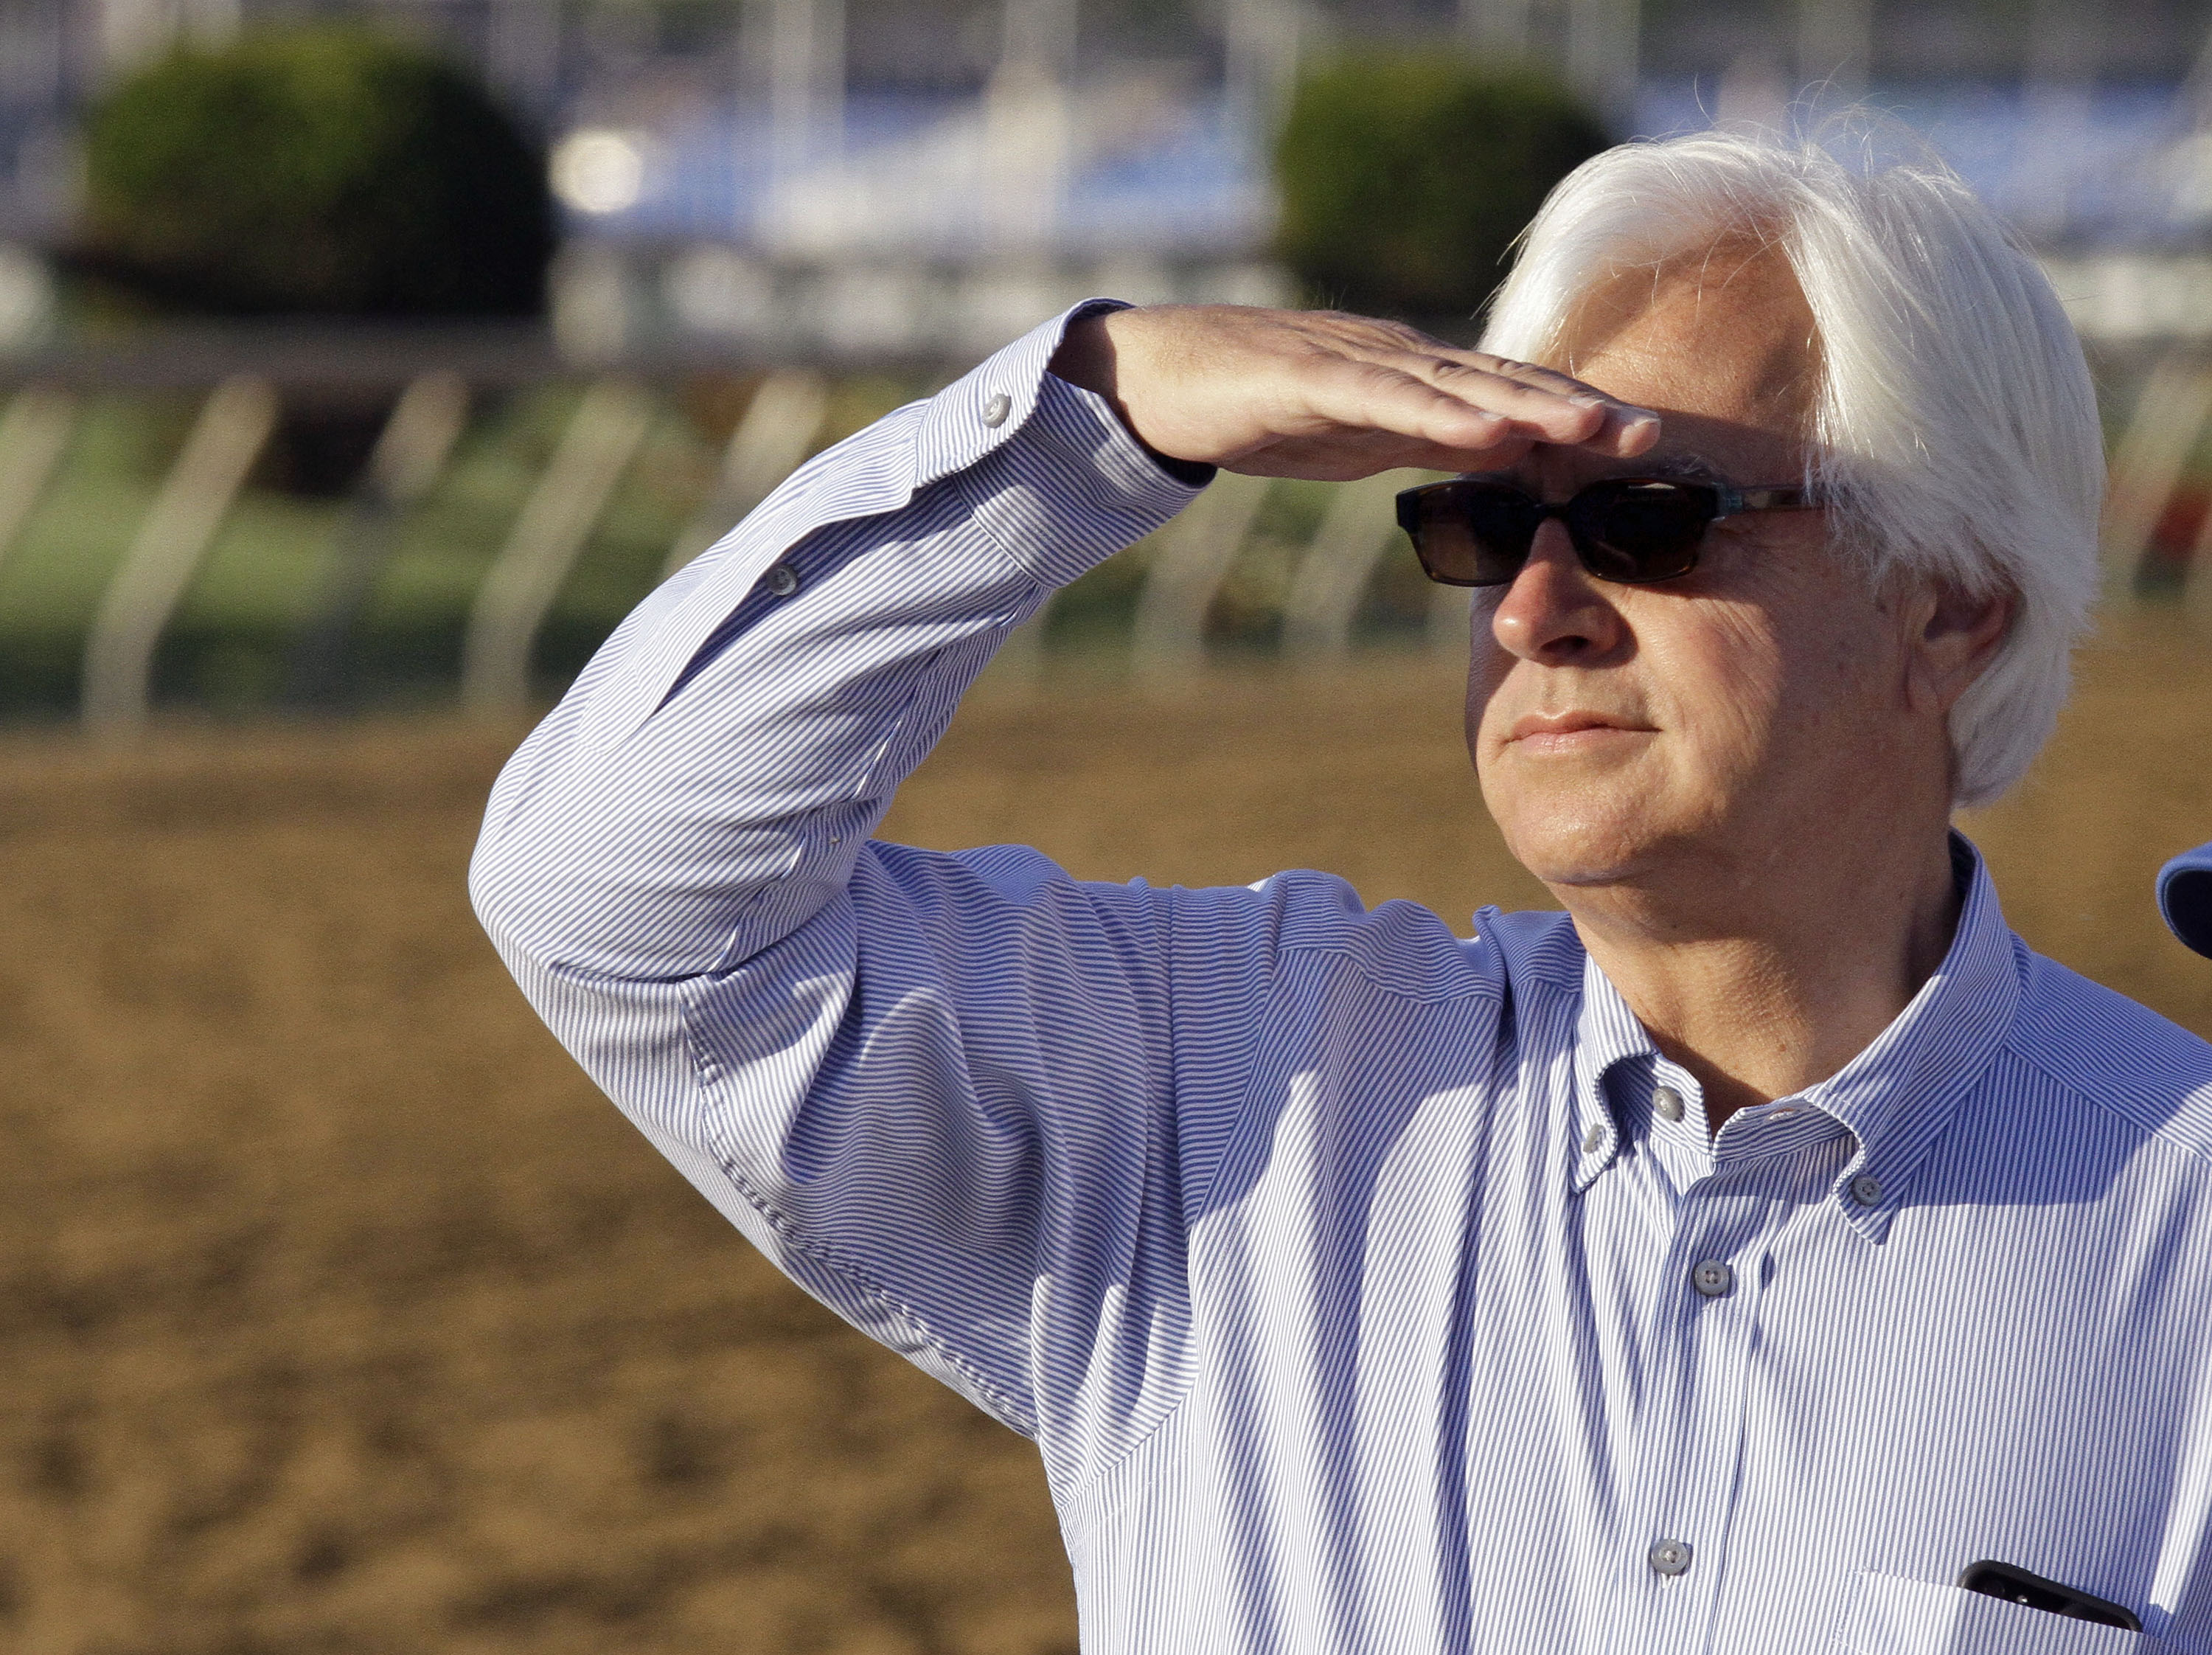 FILE - In this May 17, 2013, file photo, Hall of Fame trainer Bob Baffert watches a morning workout at Pimlico Race Course in Baltimore. Bob Baffert is ahead of the pack again, leading all trainers with 35 horses nominated to the Triple Crown races. The t